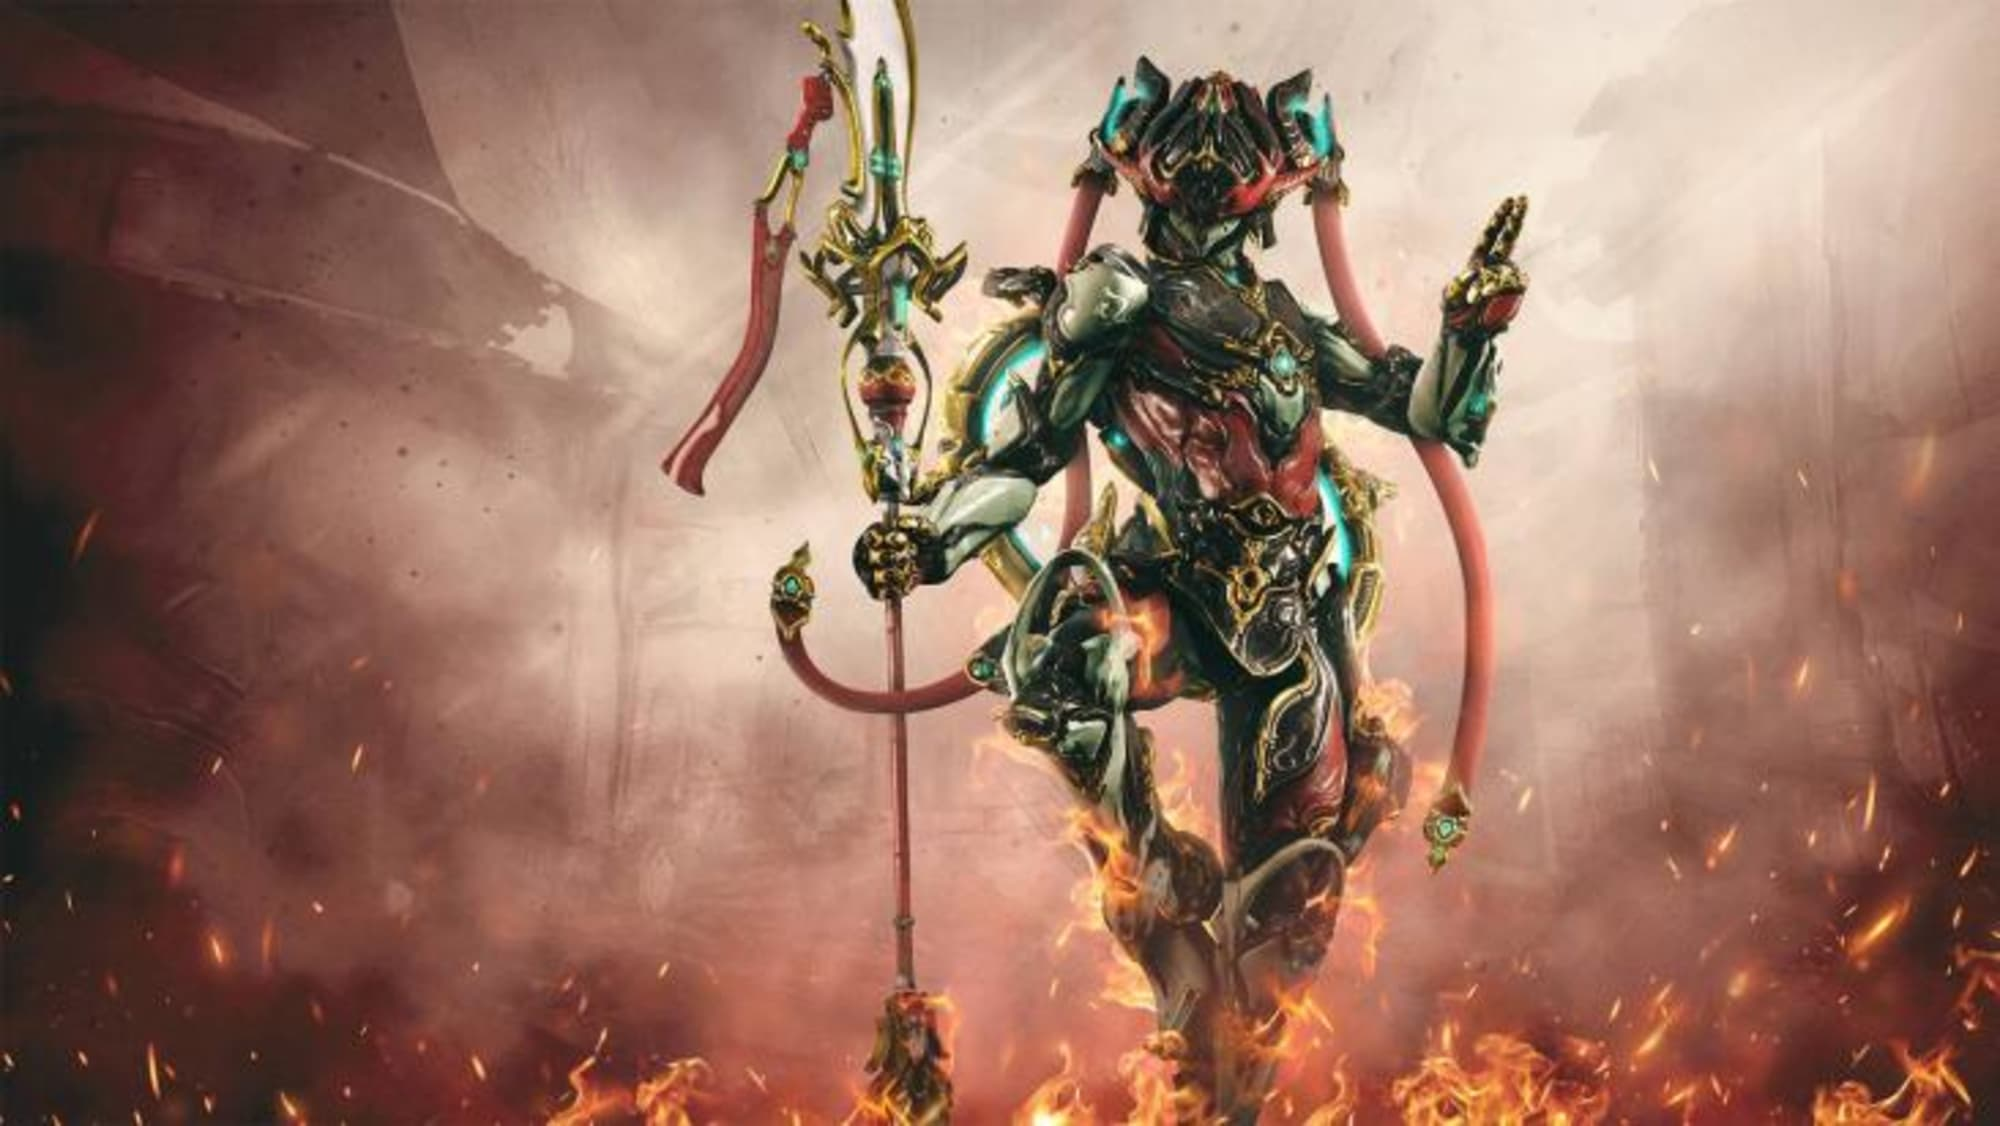 Warframe Guide How To Farm For And Build Nezha Prime You get a guaranteed axi drop every 'b' and 'c' rotation. how to farm for and build nezha prime